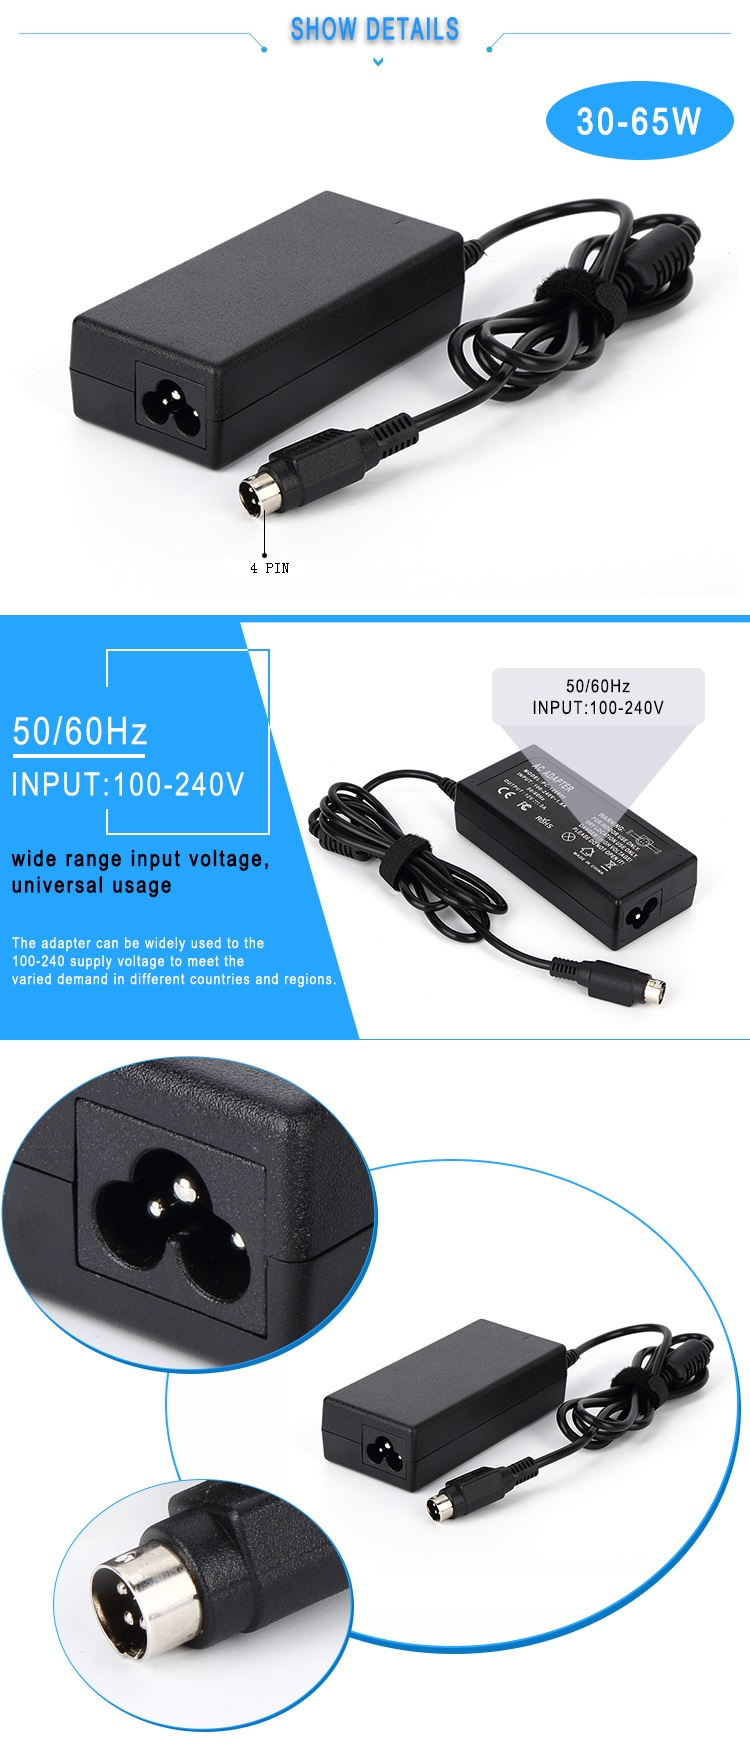 Sofa power supply or dc adapters 29v power pack for recliner